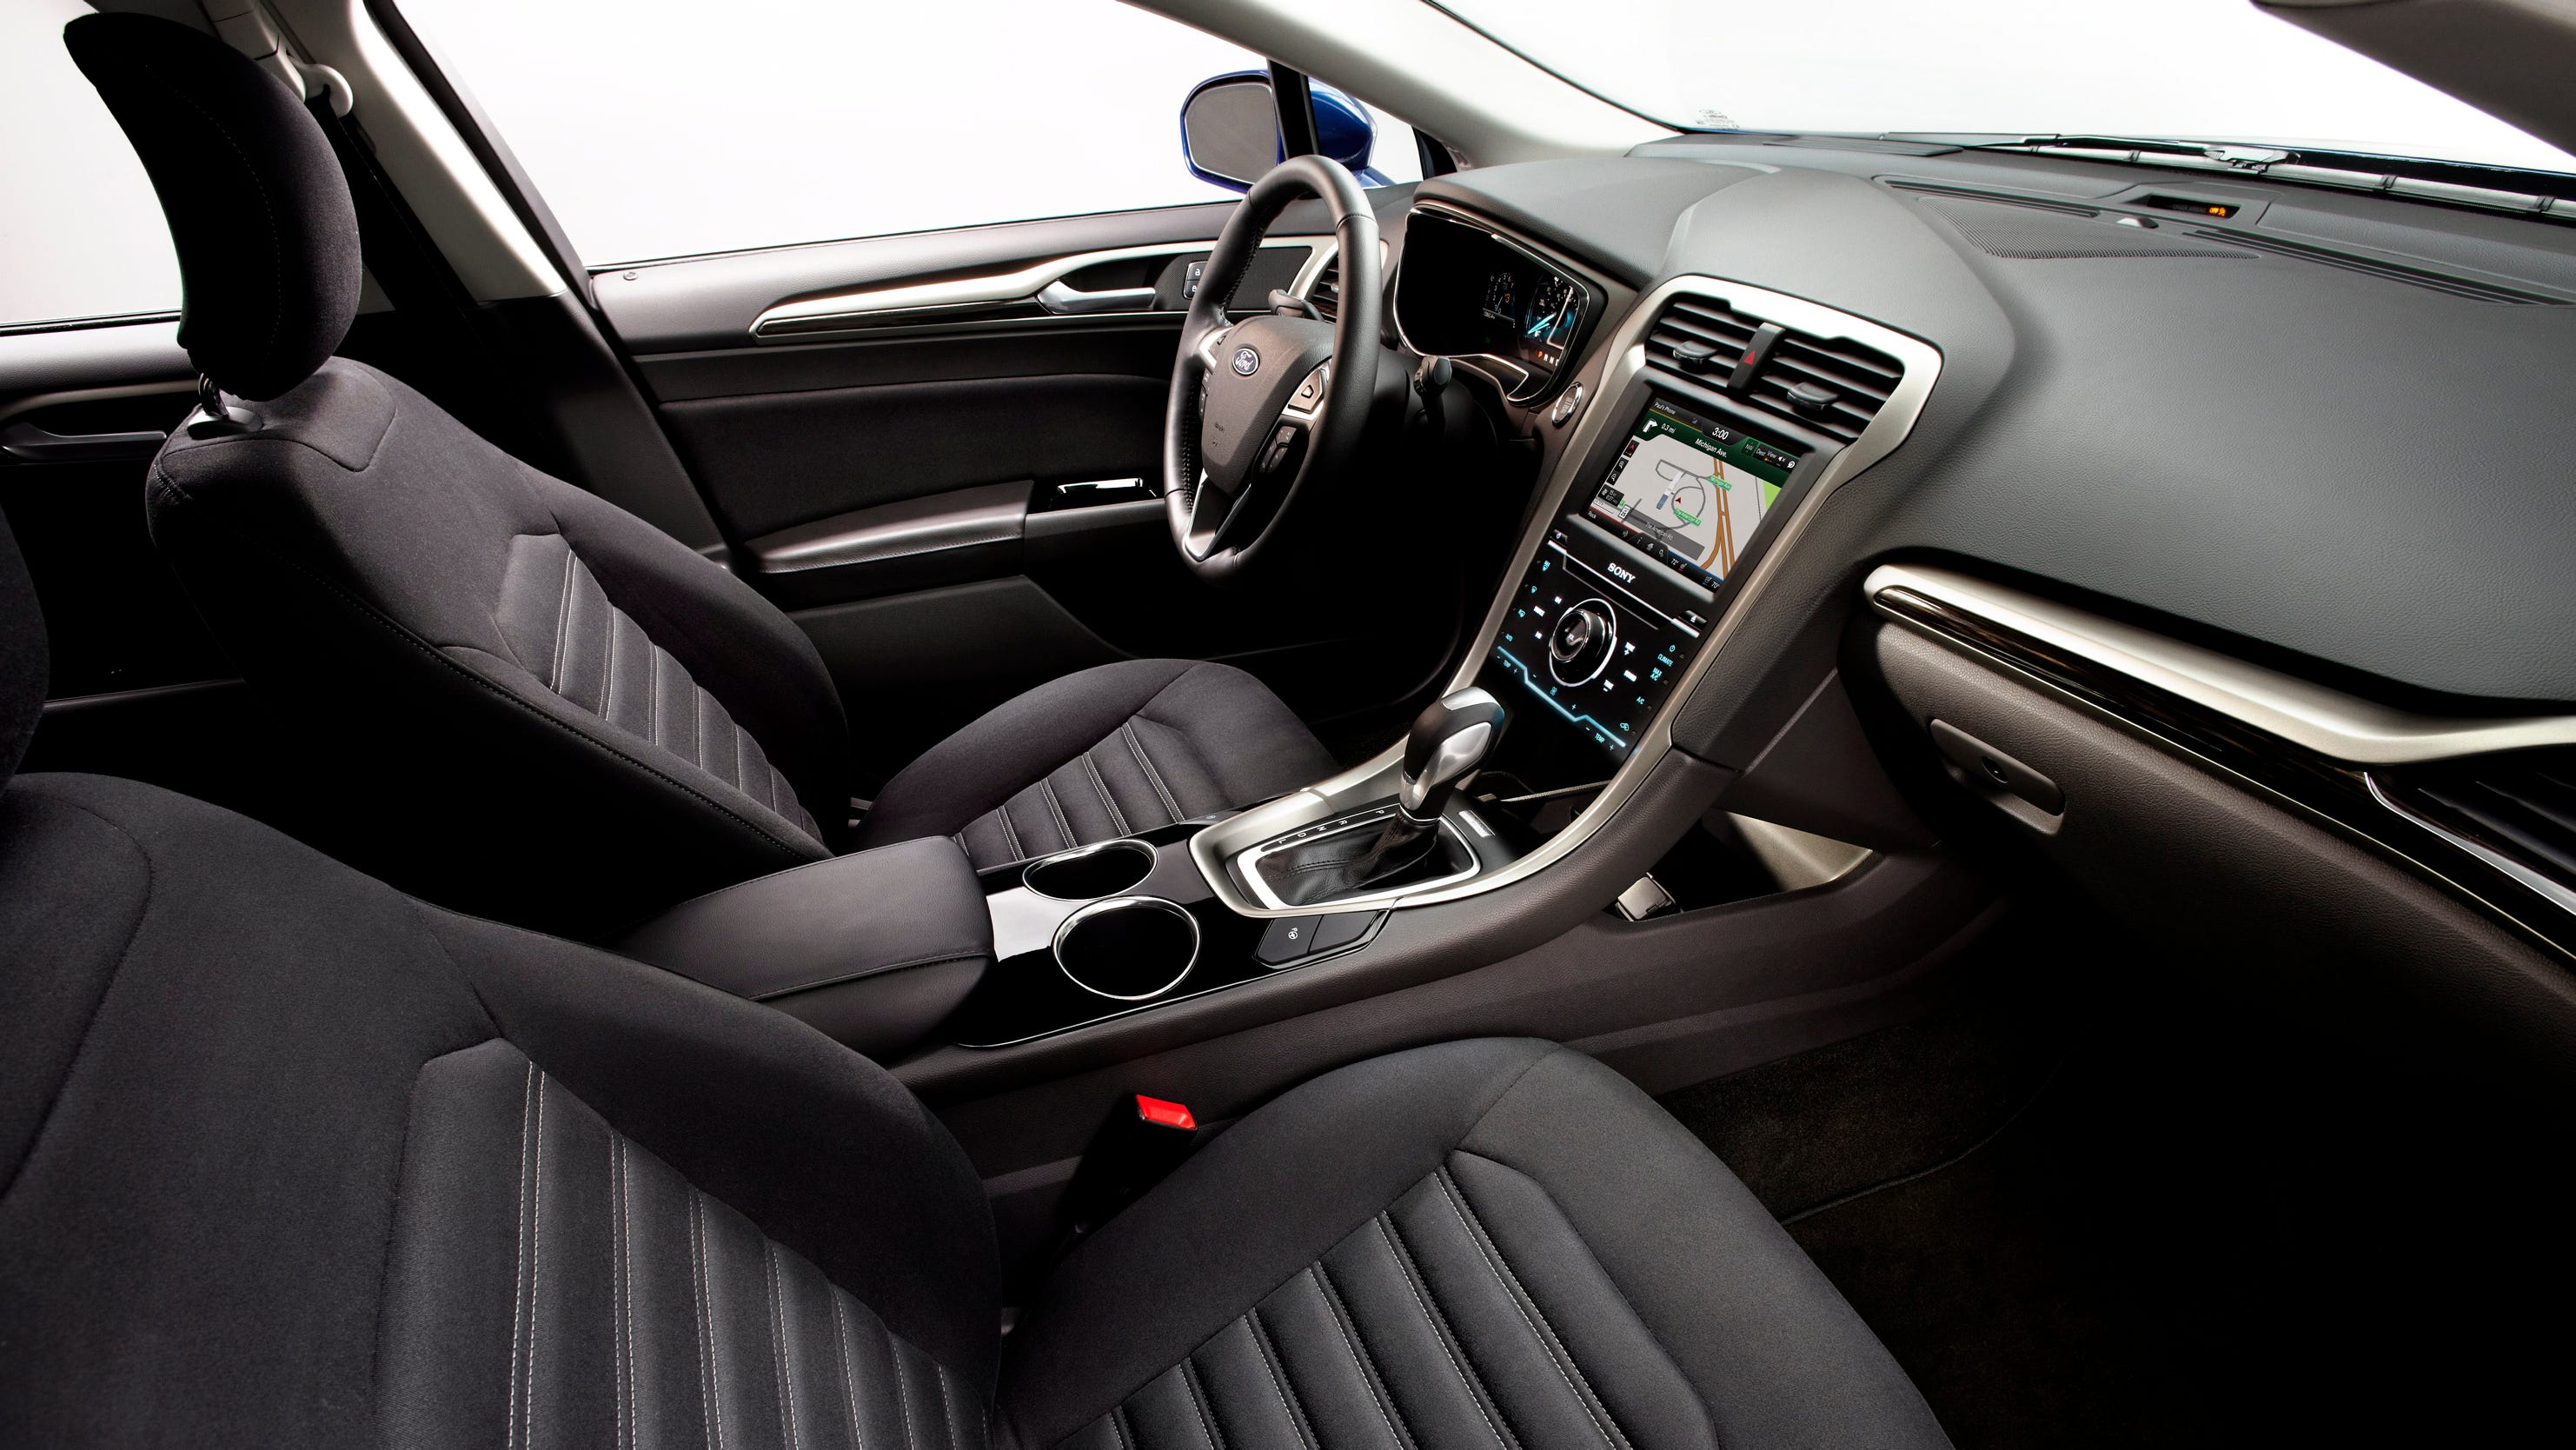 Auto Review The 2014 Ford Fusion Hybrid Gets Uncomplicated